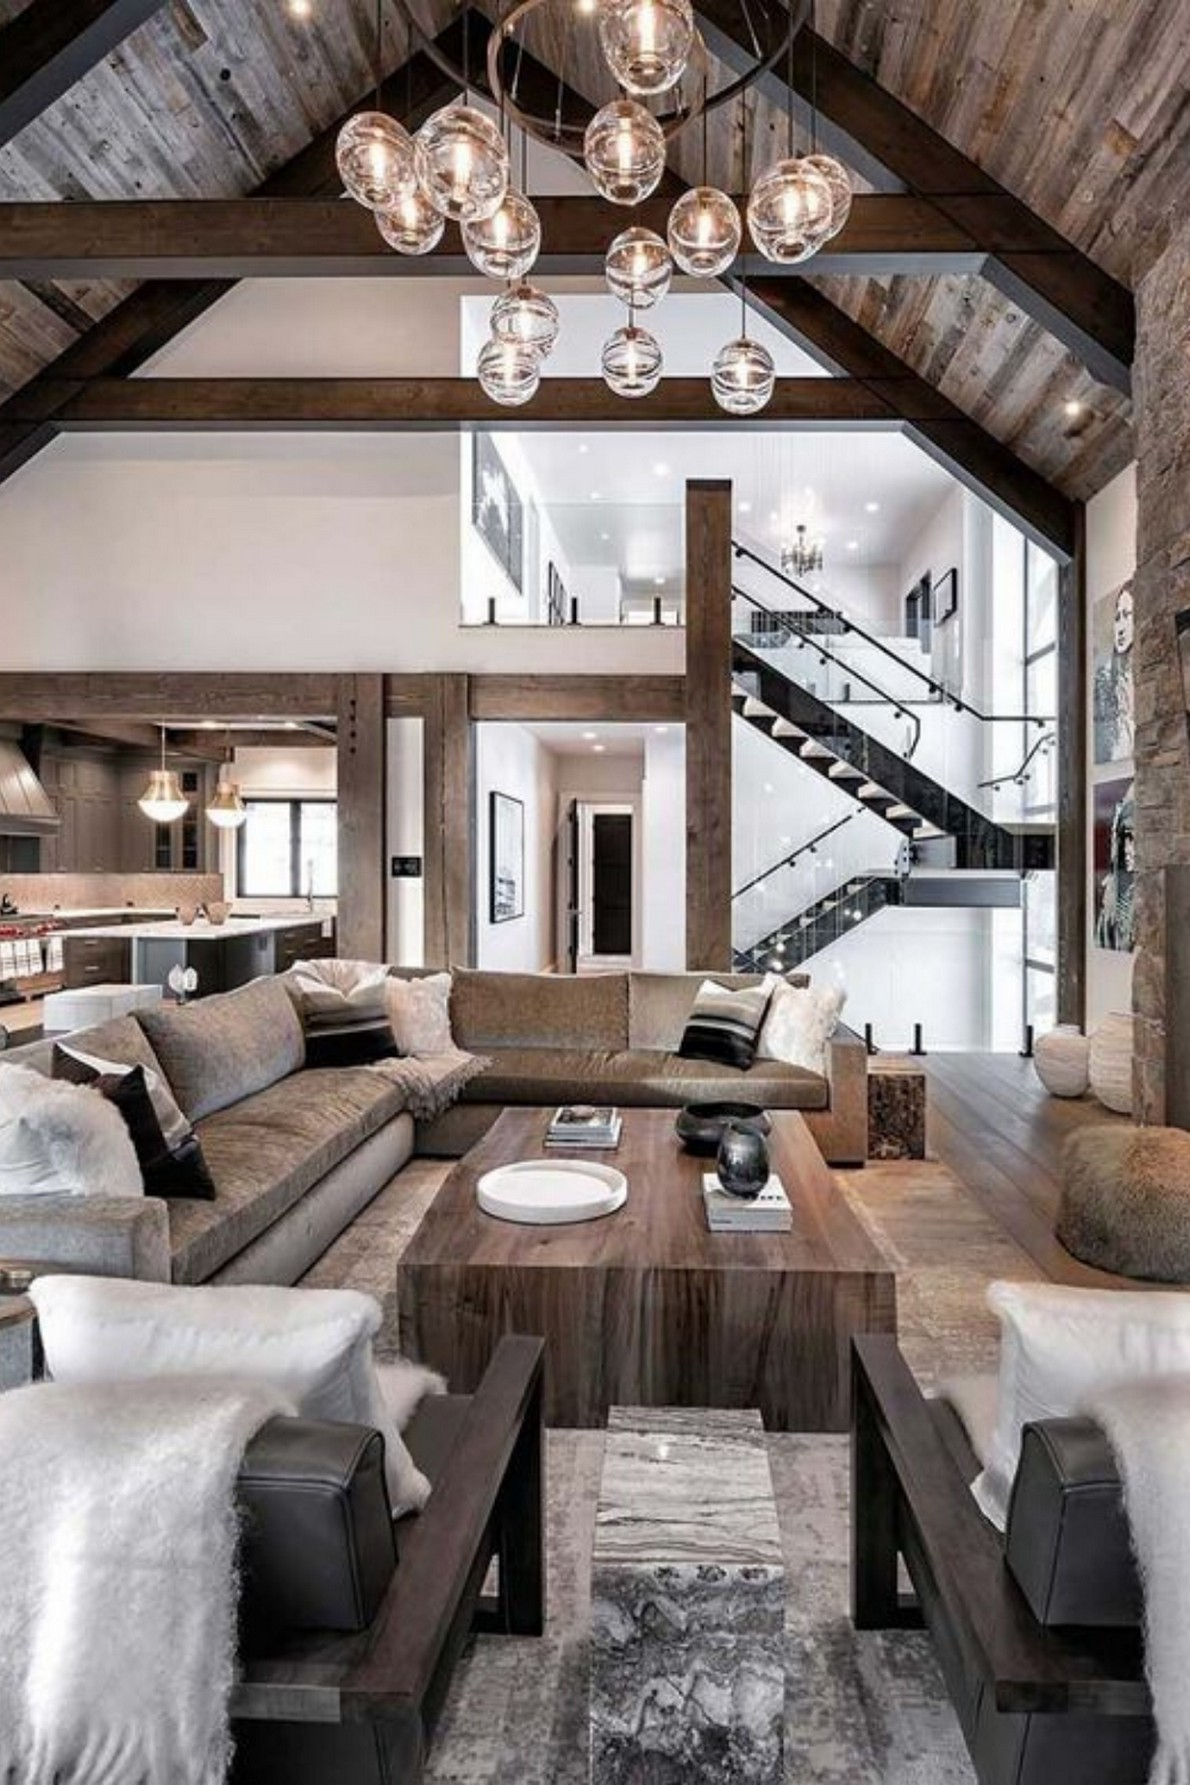 67 Rustic Home Decorating Ideas In 2020 Home Decor 50